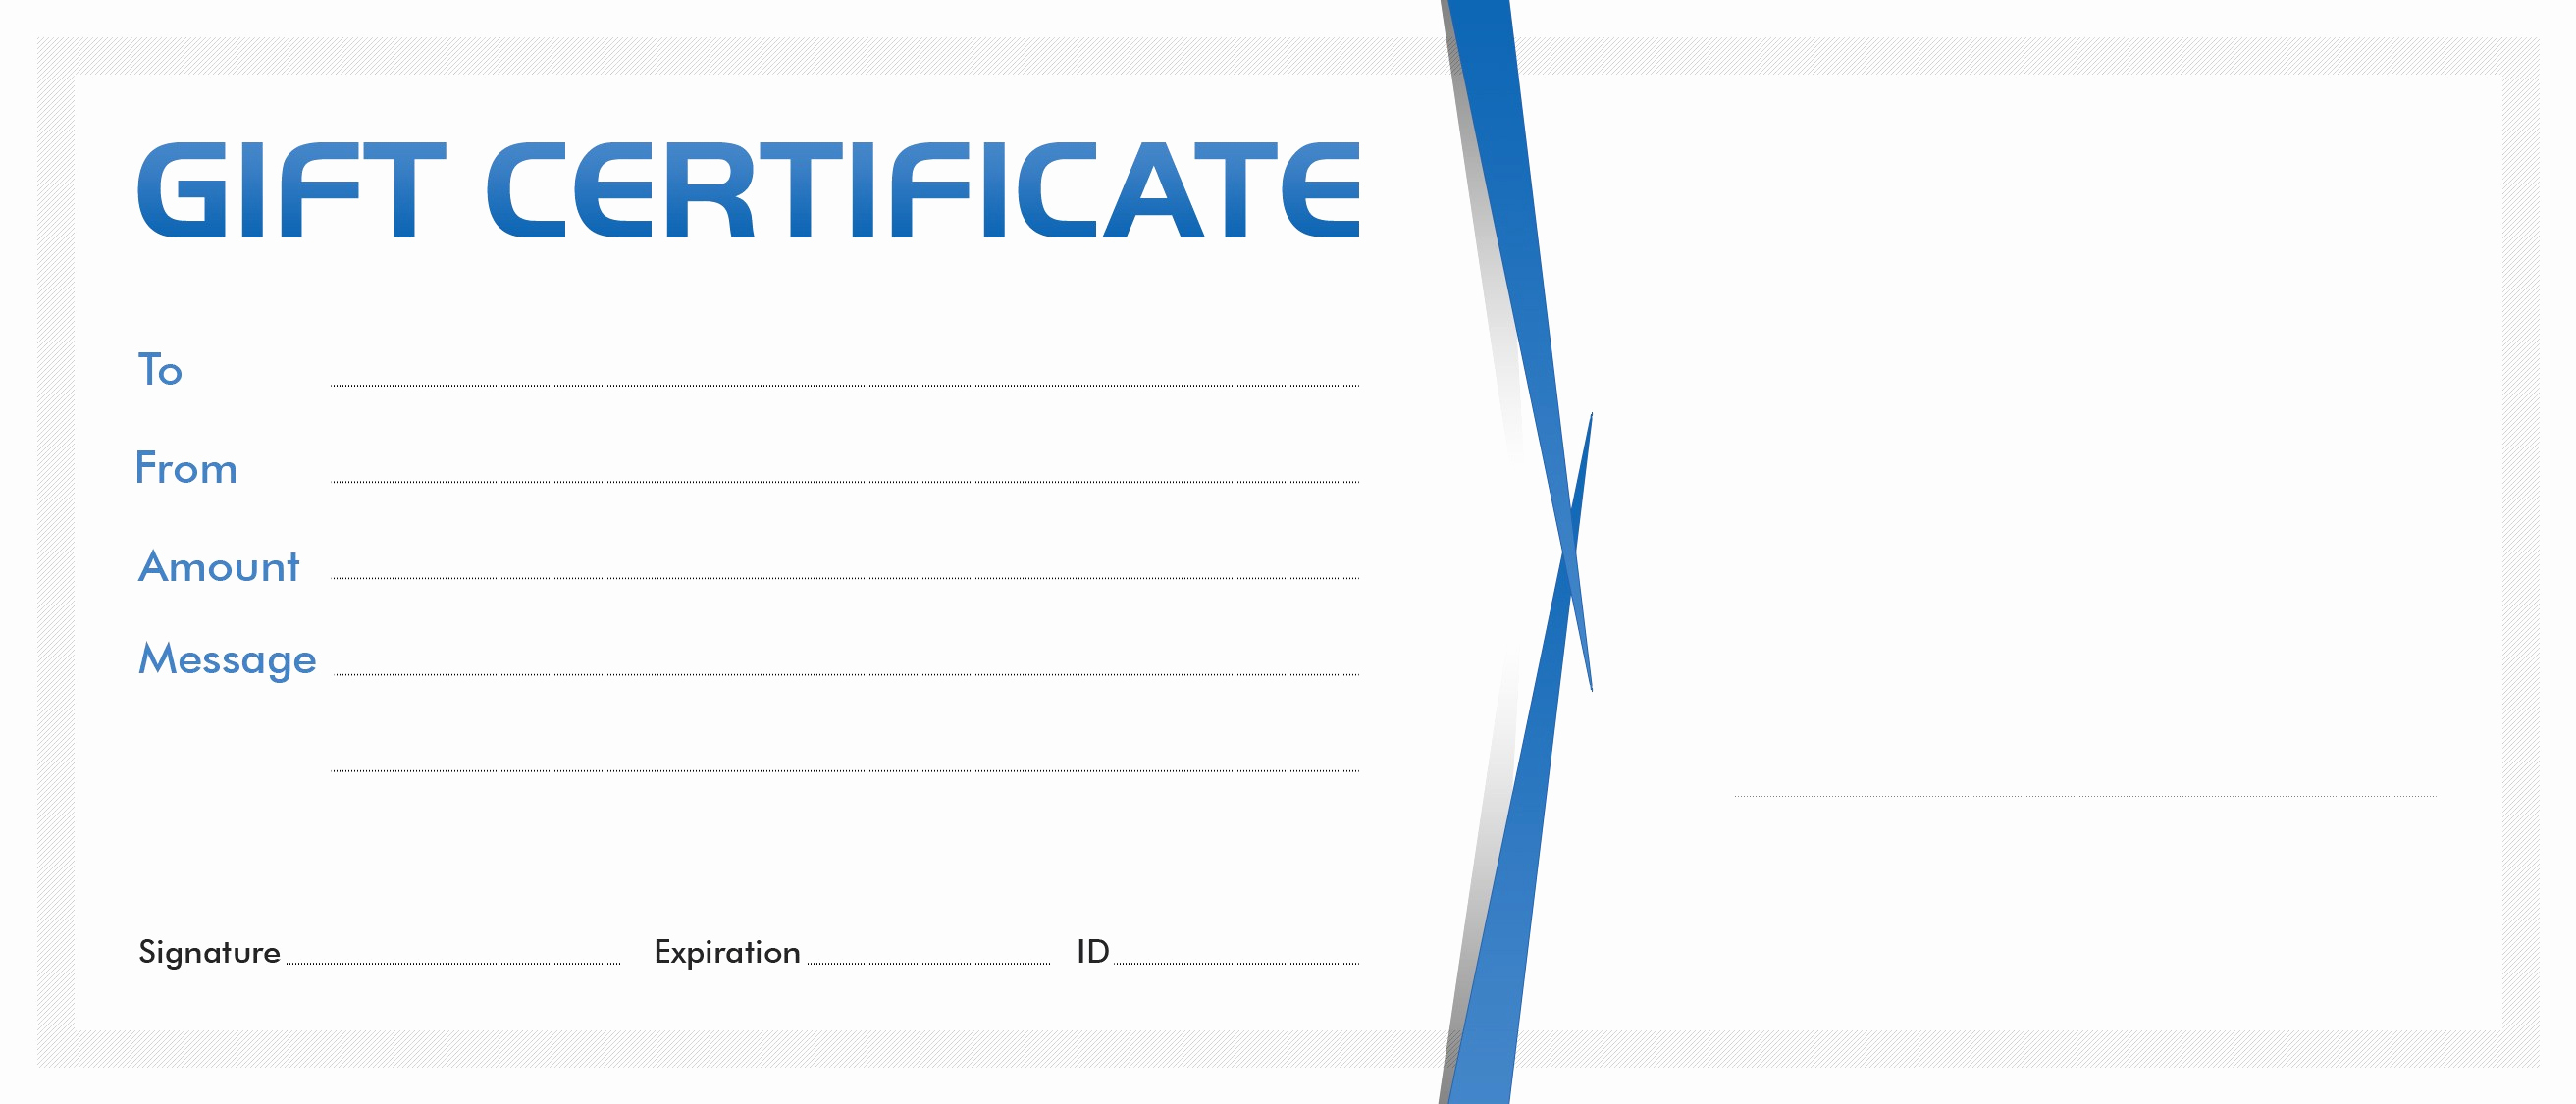 Template for Gift Certificate New Gift Certificate Blank Template – Gift Voucher Gift